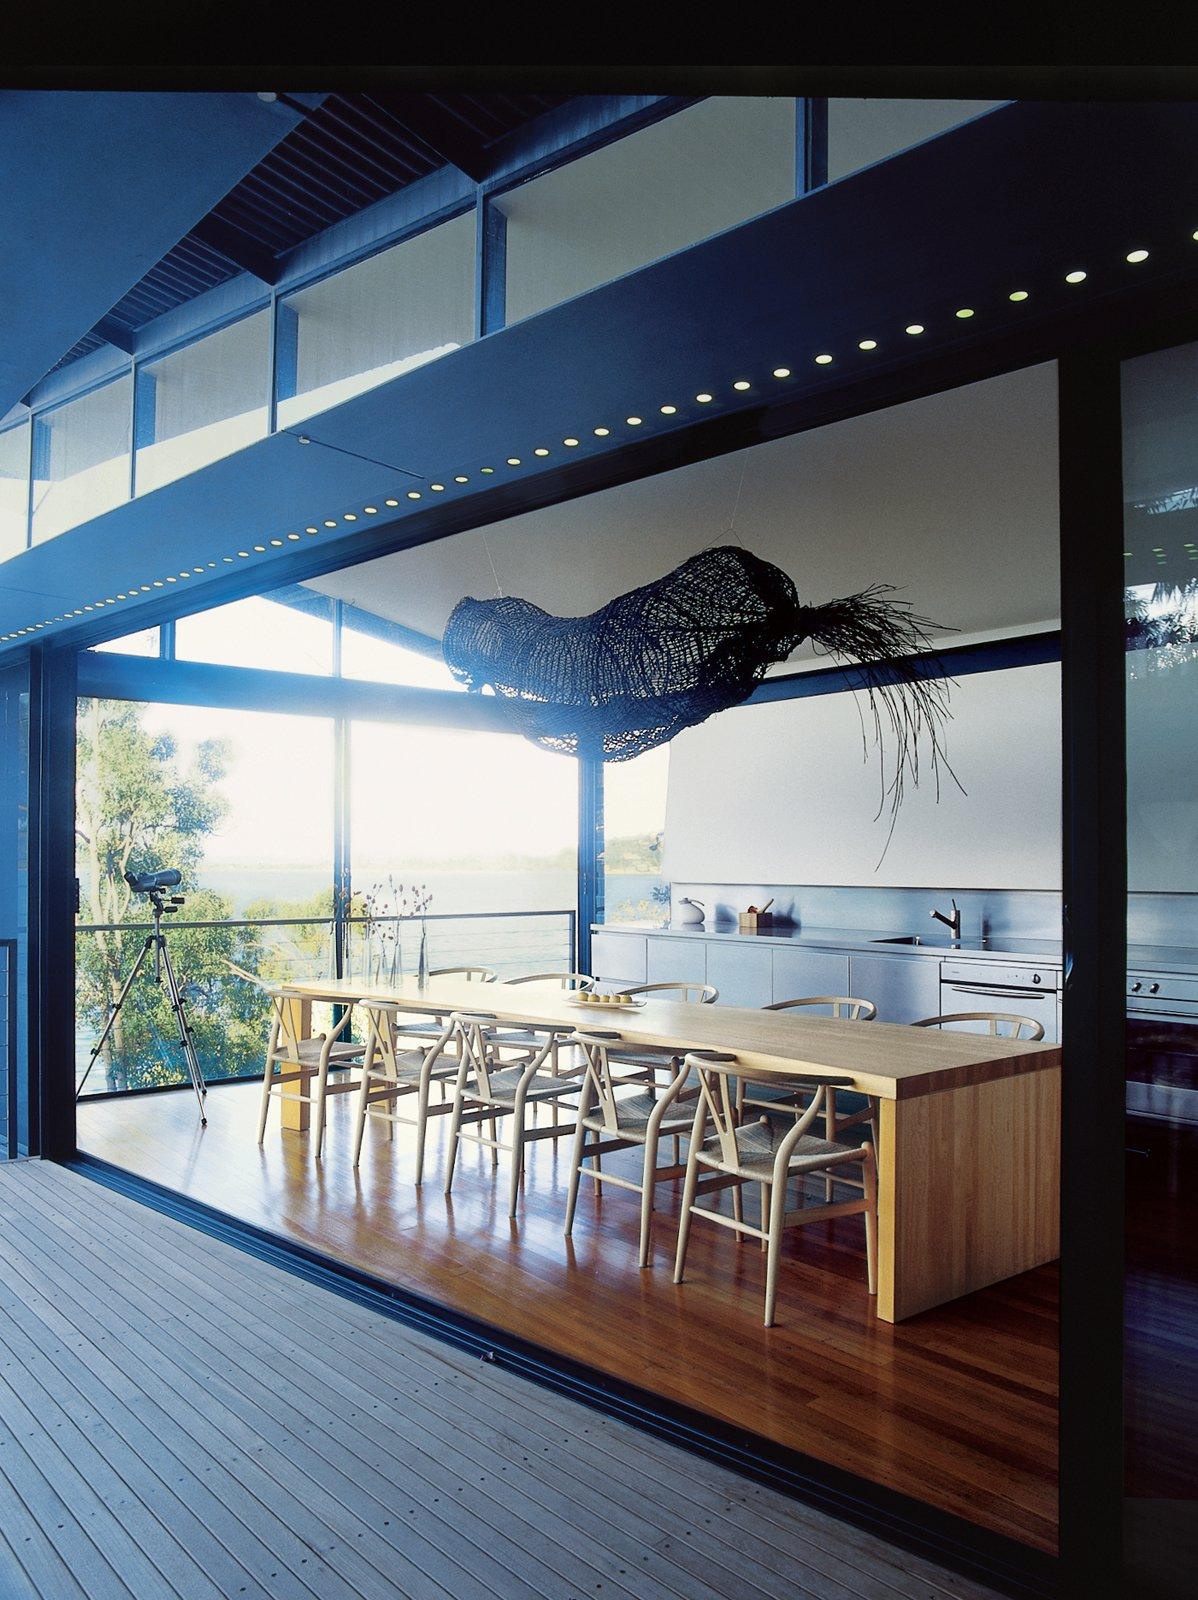 Medium Hardwood Floor, Dining Room, Chair, and Table ૠ  Photos from Three Glass-and-Copper Pavilions Conquer the Cliffs